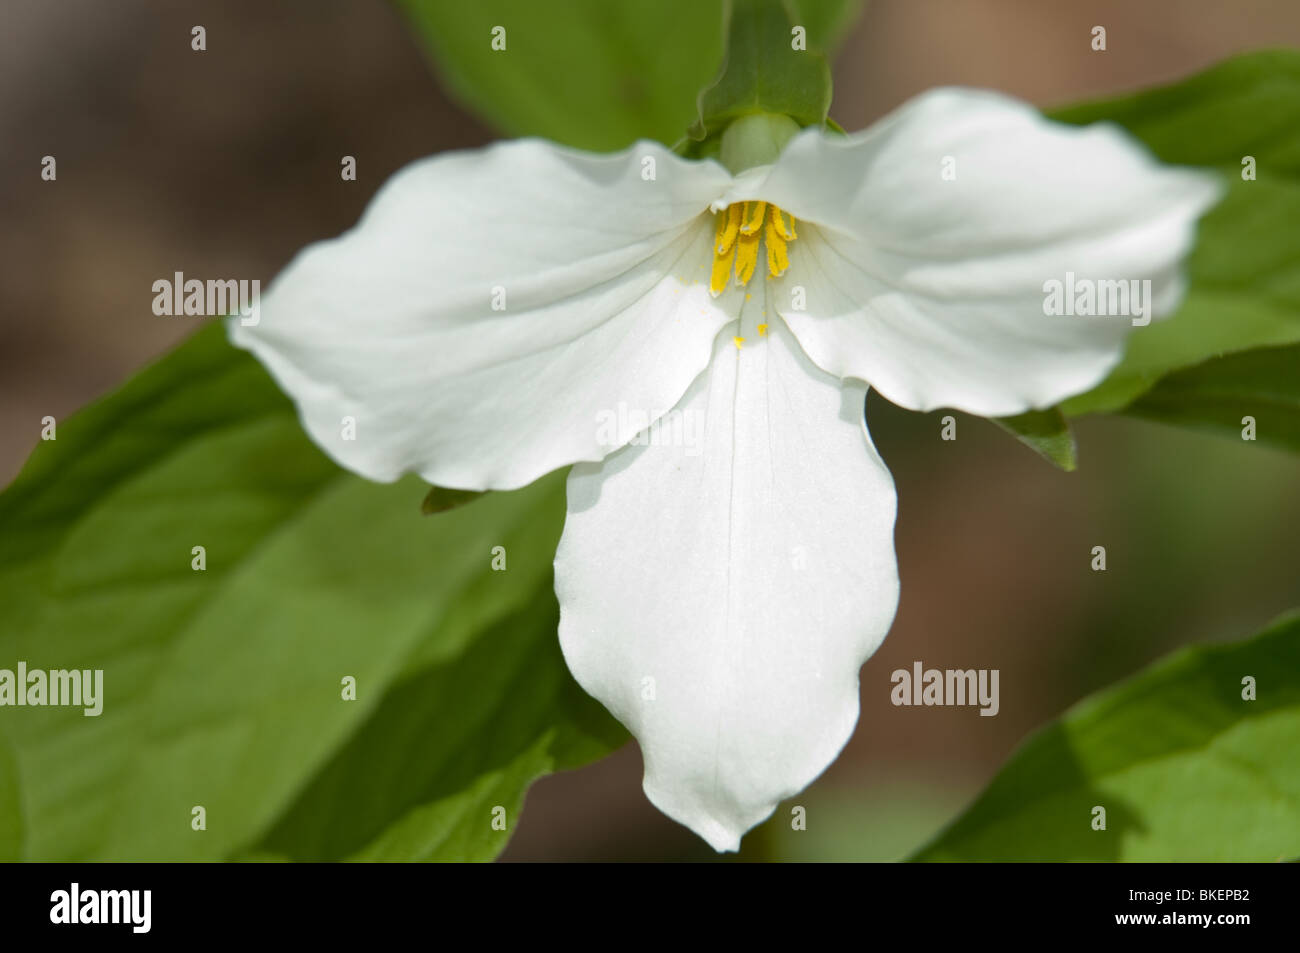 The White Trillium Is The Official Flower Of The Province Of Ontario